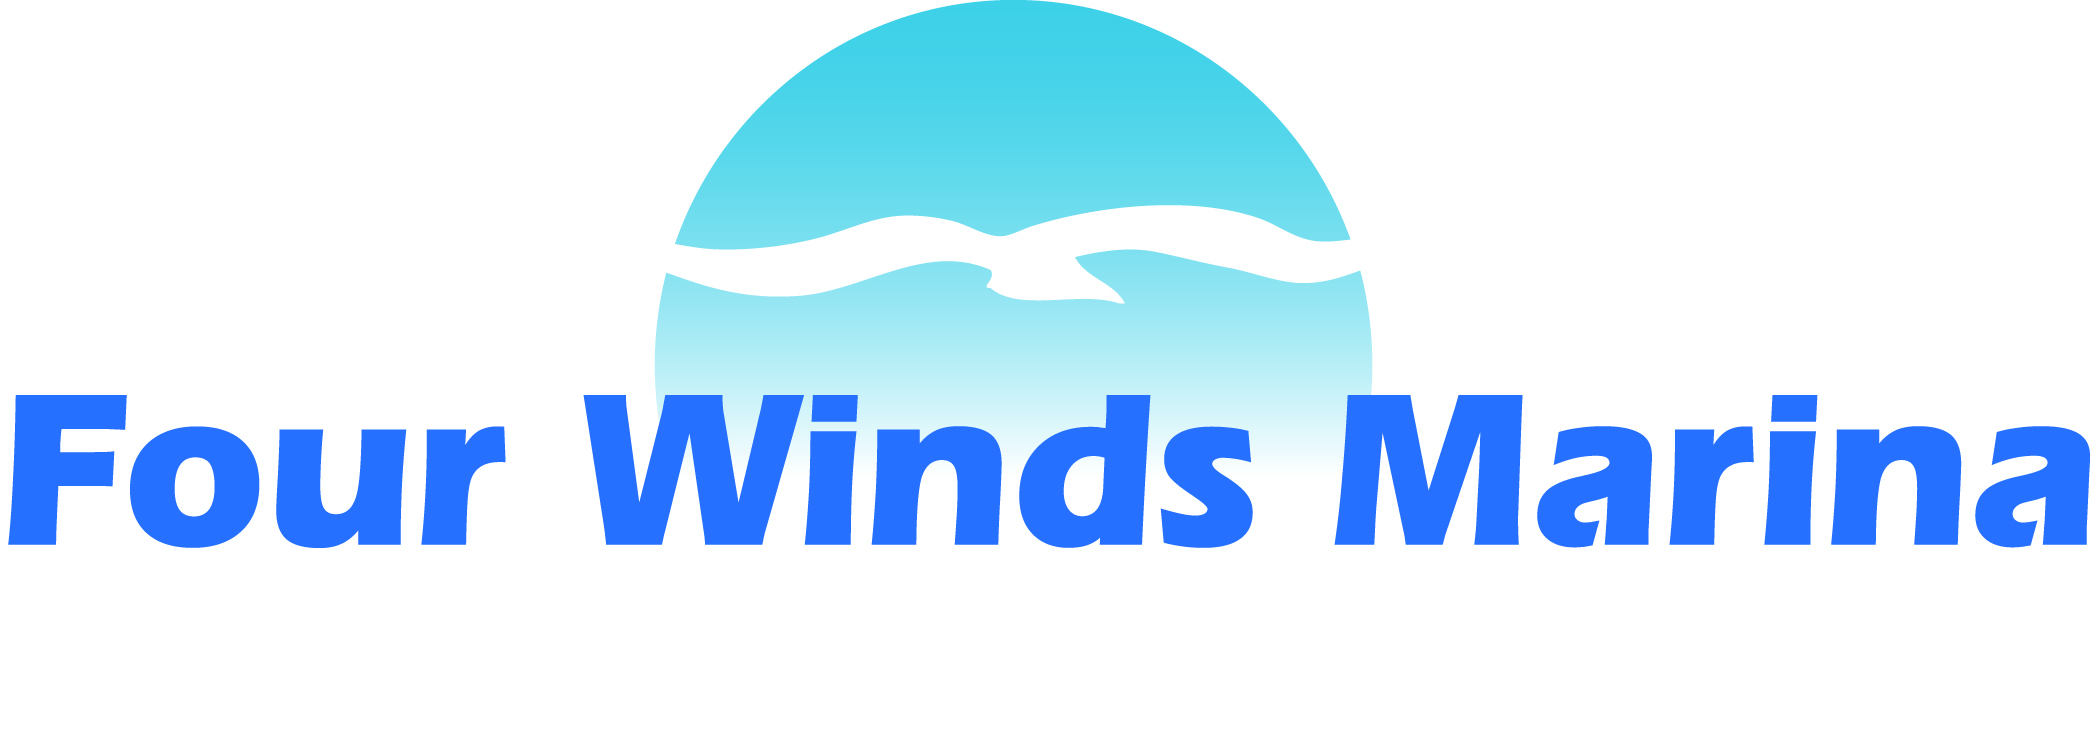 FOUR WINDS MARINA